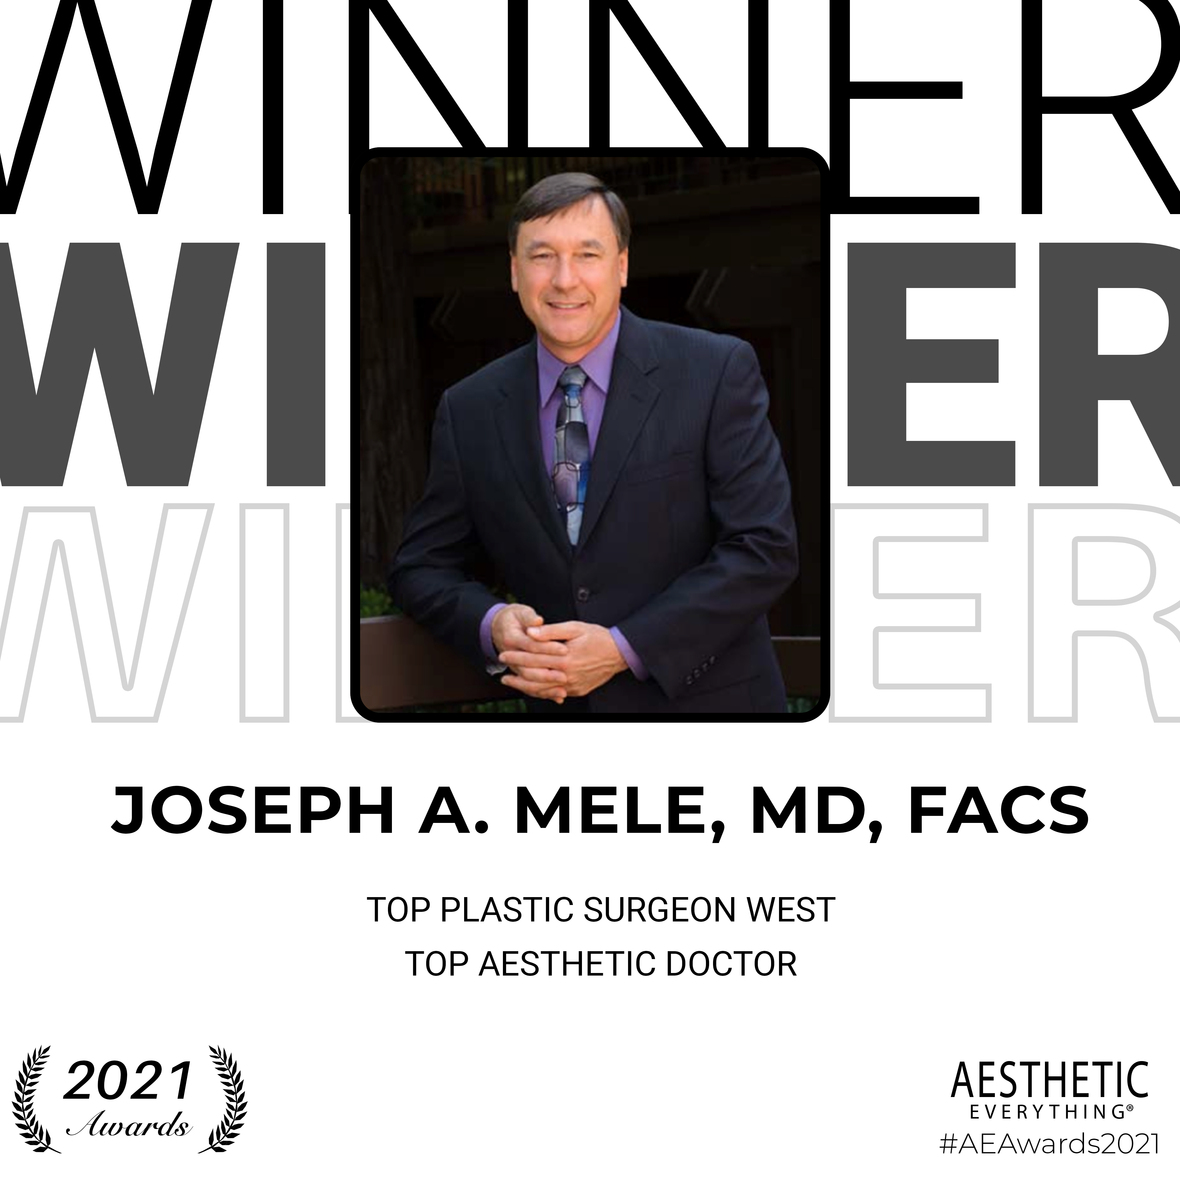 Top Plastic Surgeon West & Top Aesthetic Doctor Award - Dr. Mele